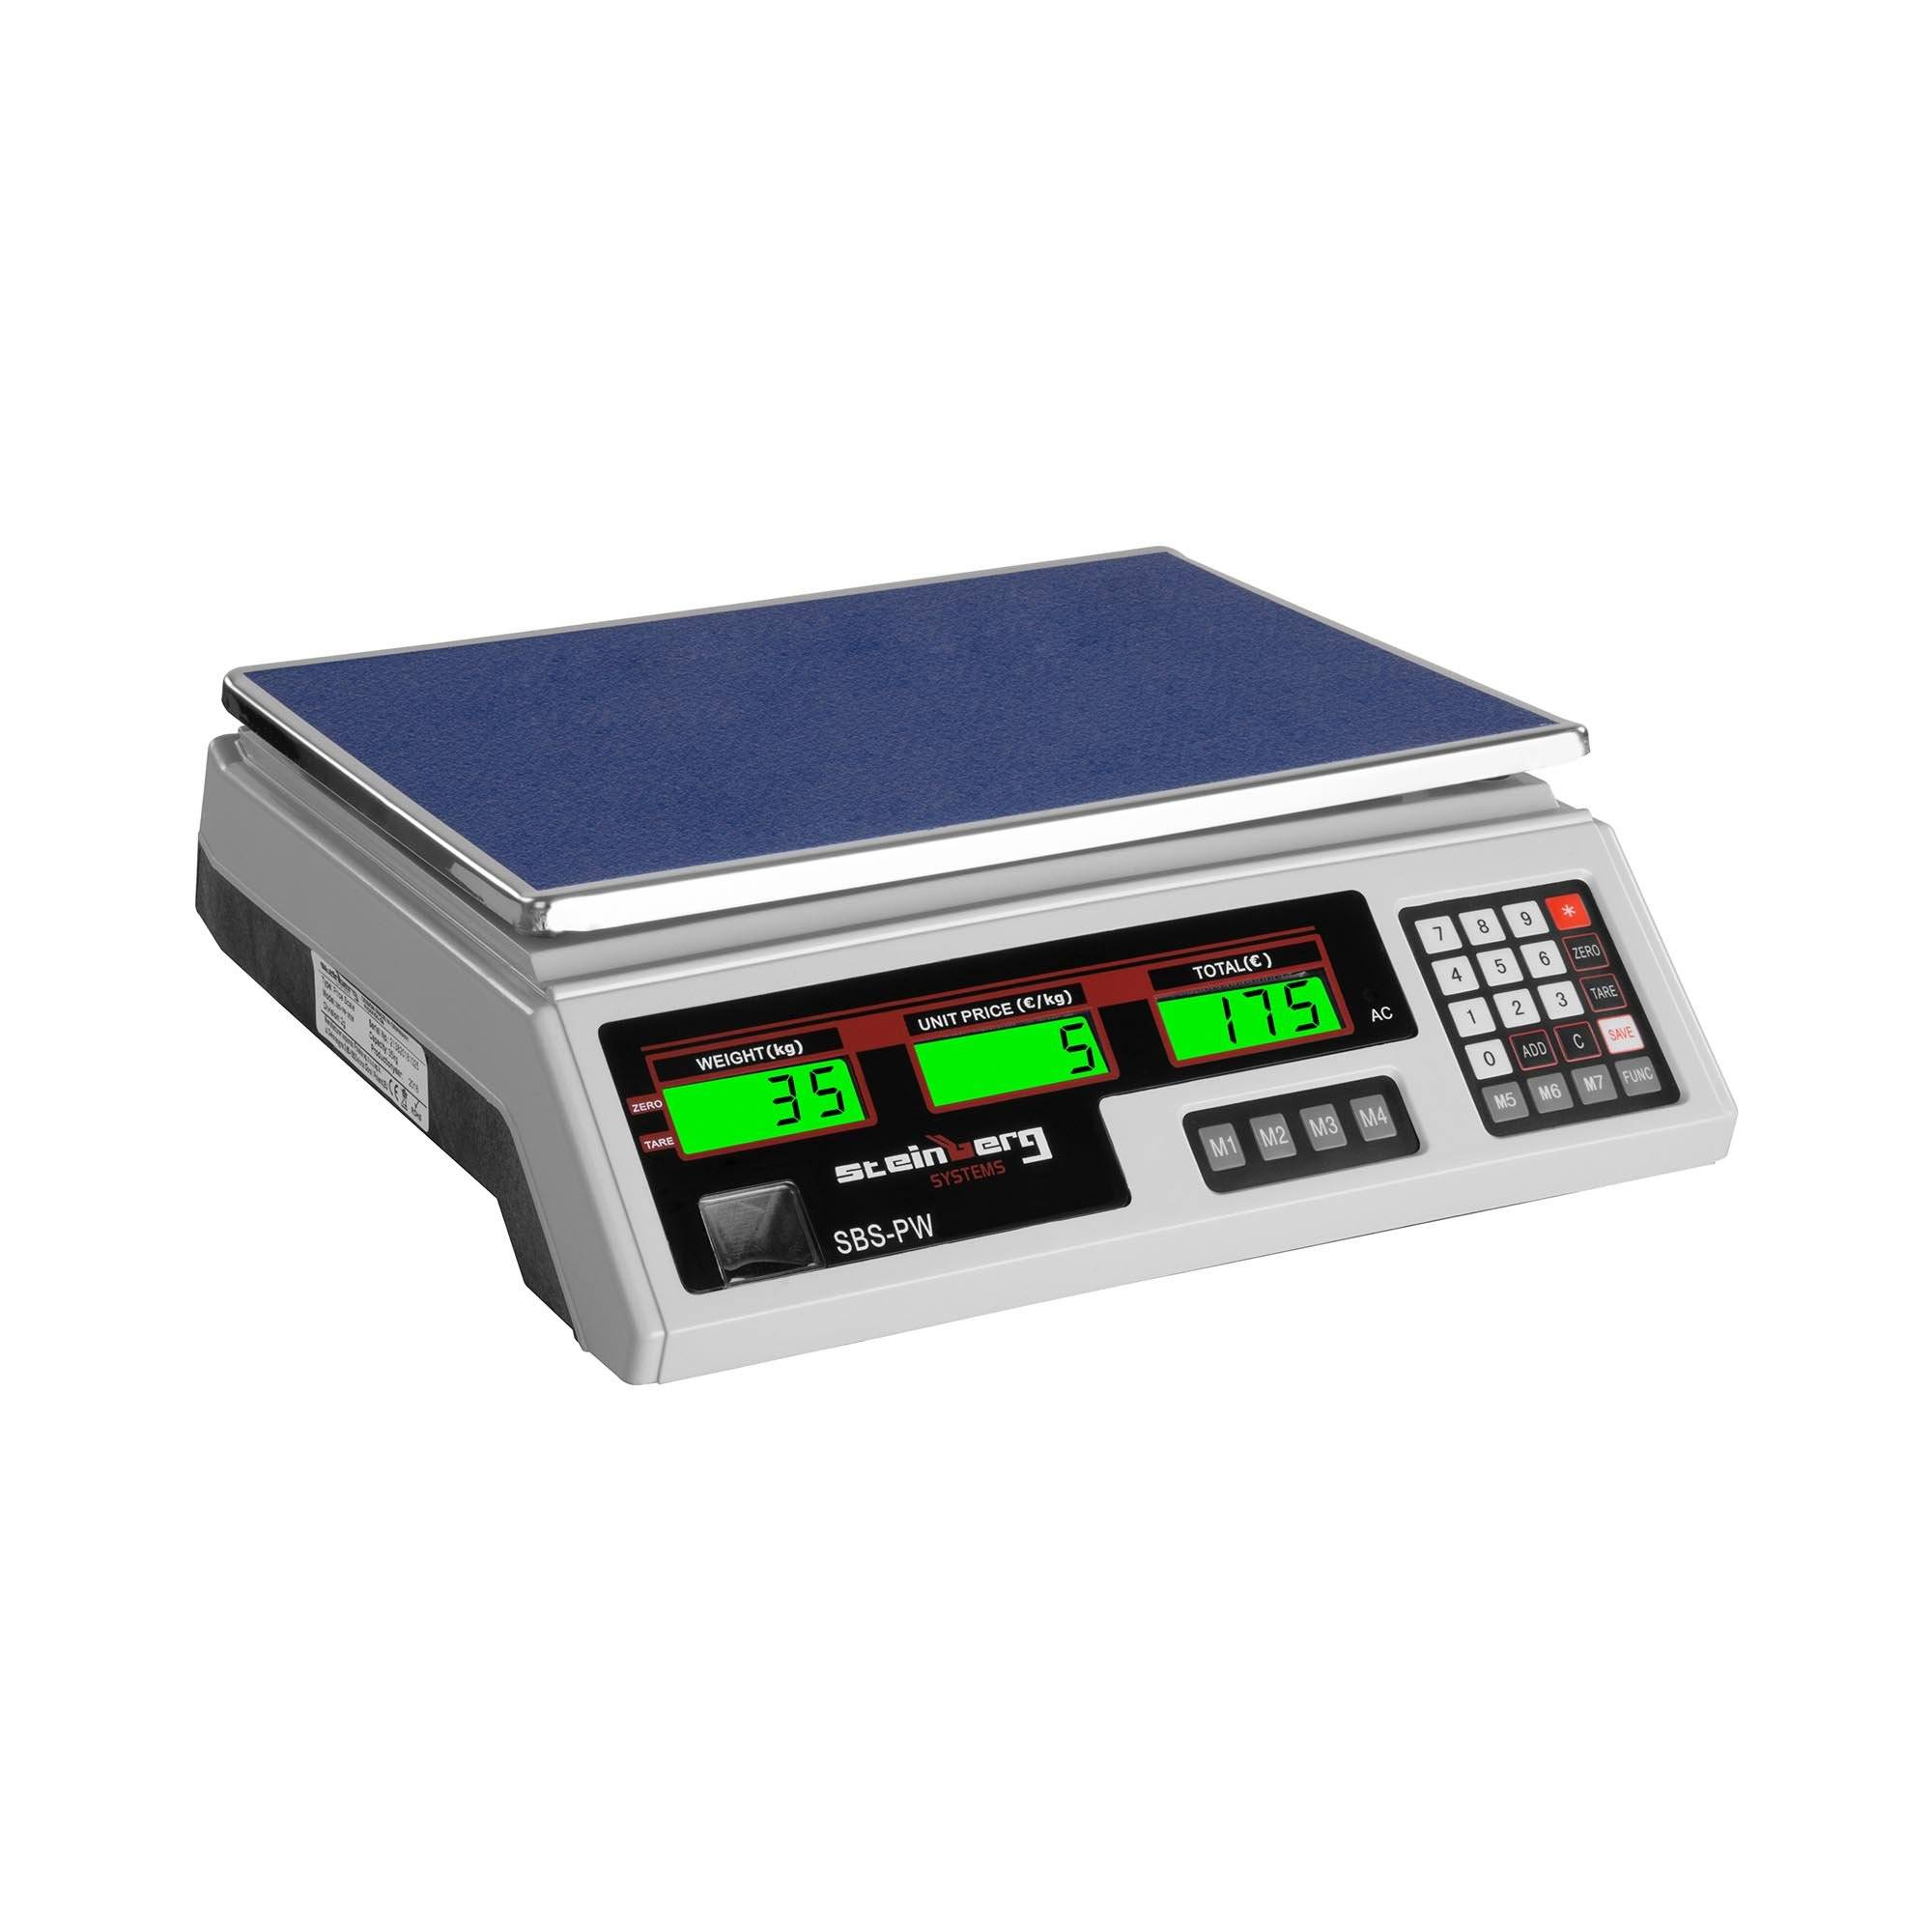 Steinberg Systems Balance poids-prix - 35 kg / 2 g - blanche - LCD SBS-PW-352W